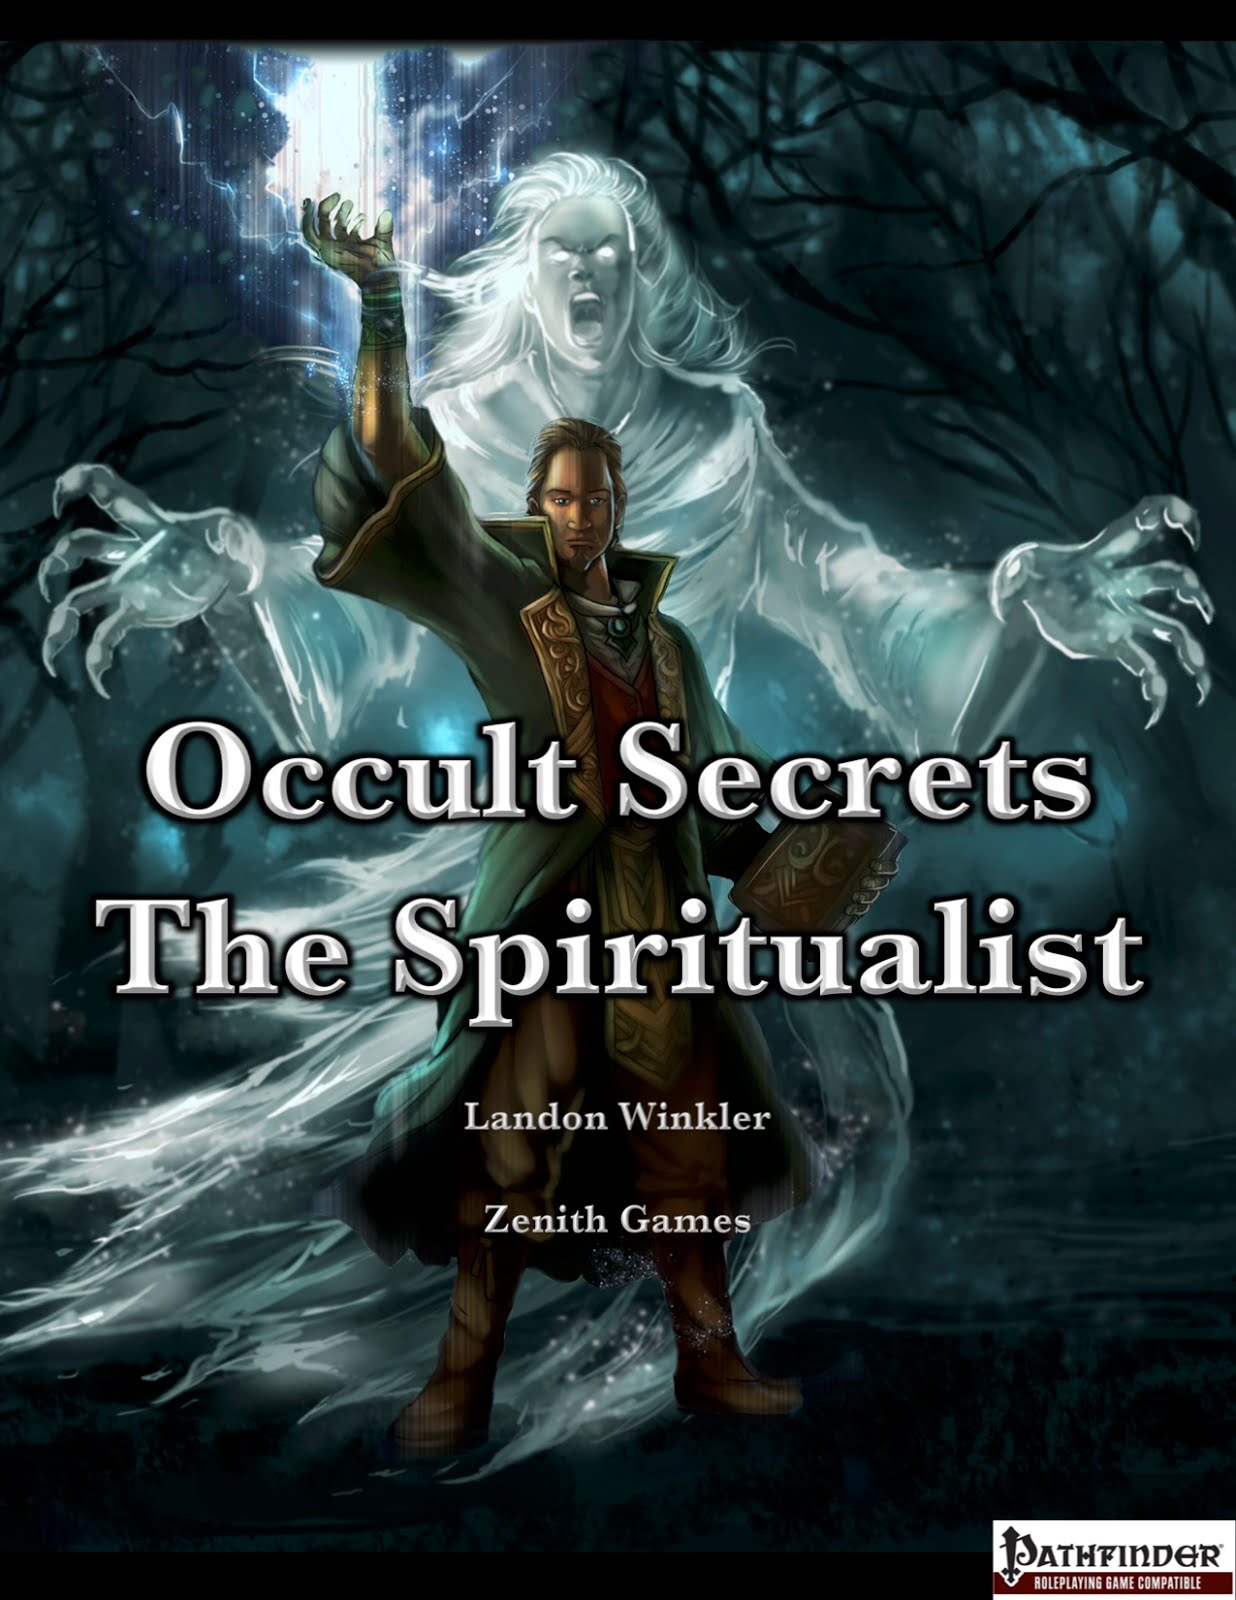 Occult Secrets: The Spiritualist